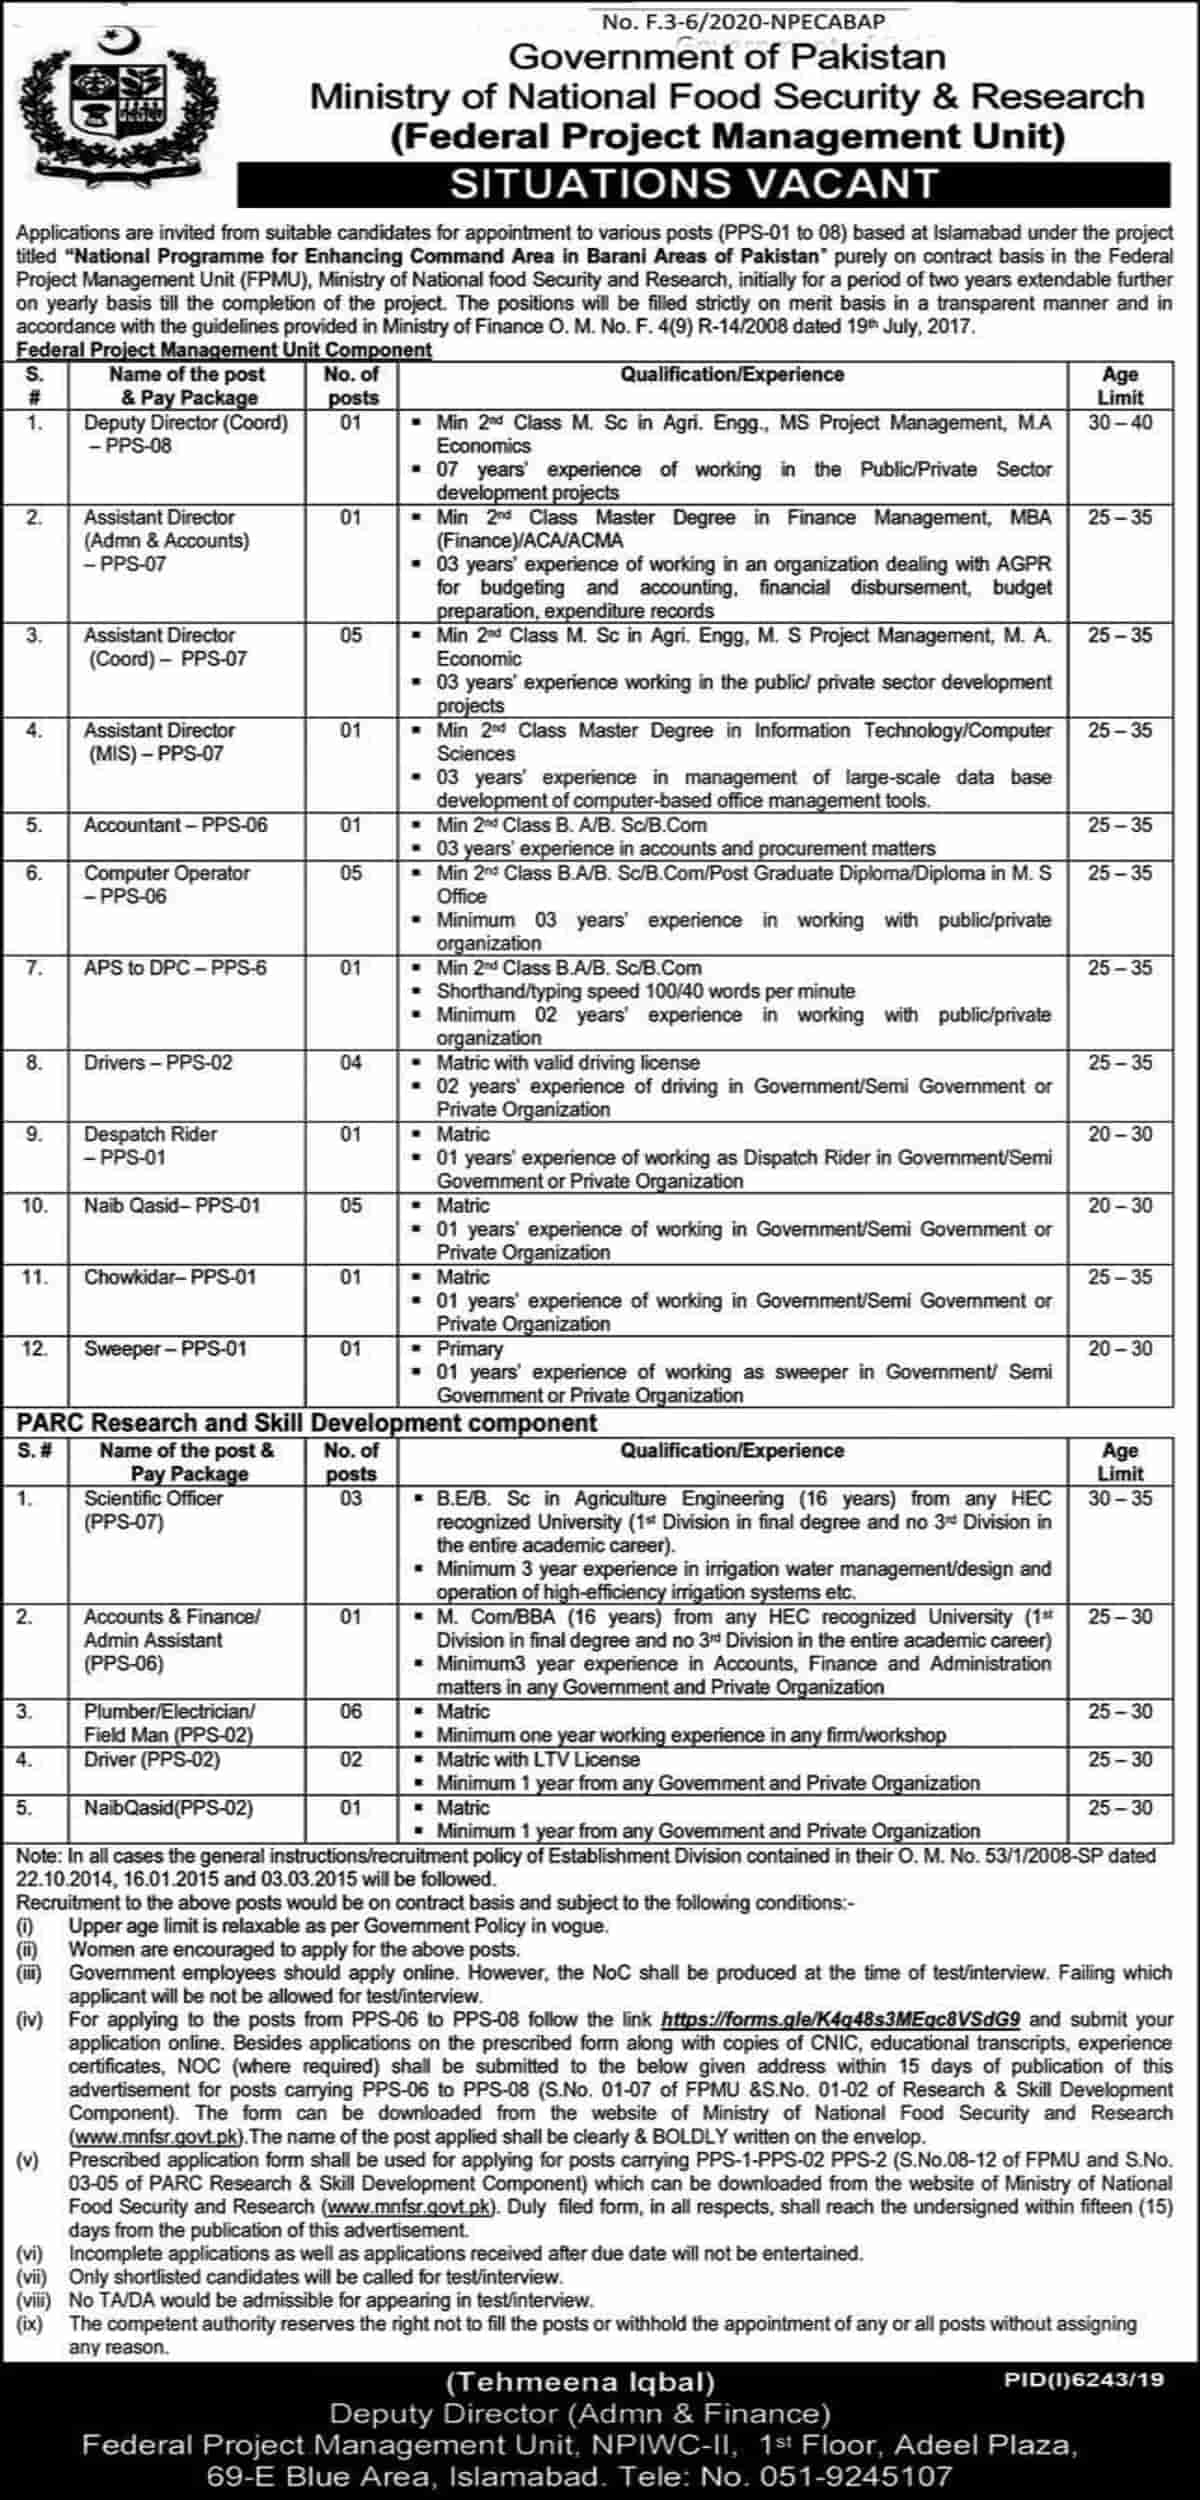 Ministry of National Food Security and Research Jobs 2020 www.mnfsr.gov.pk 1